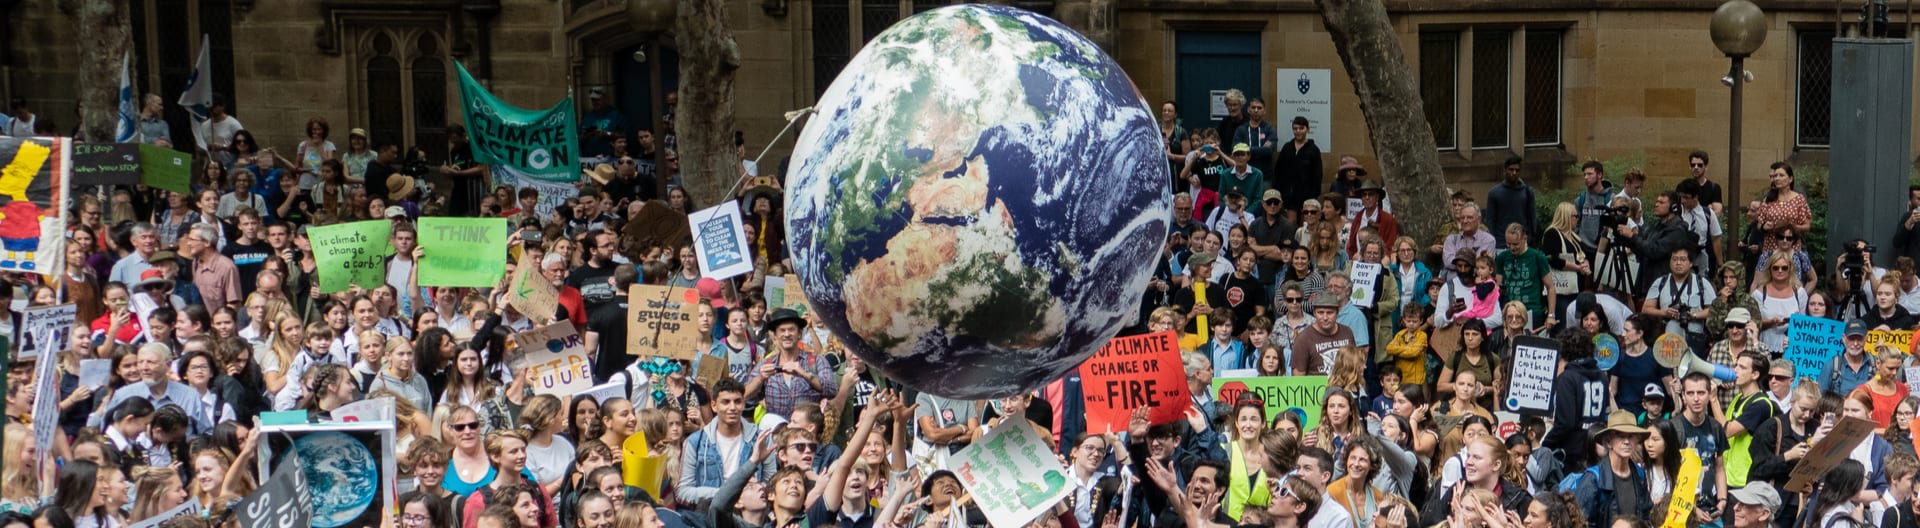 Climate change protest march